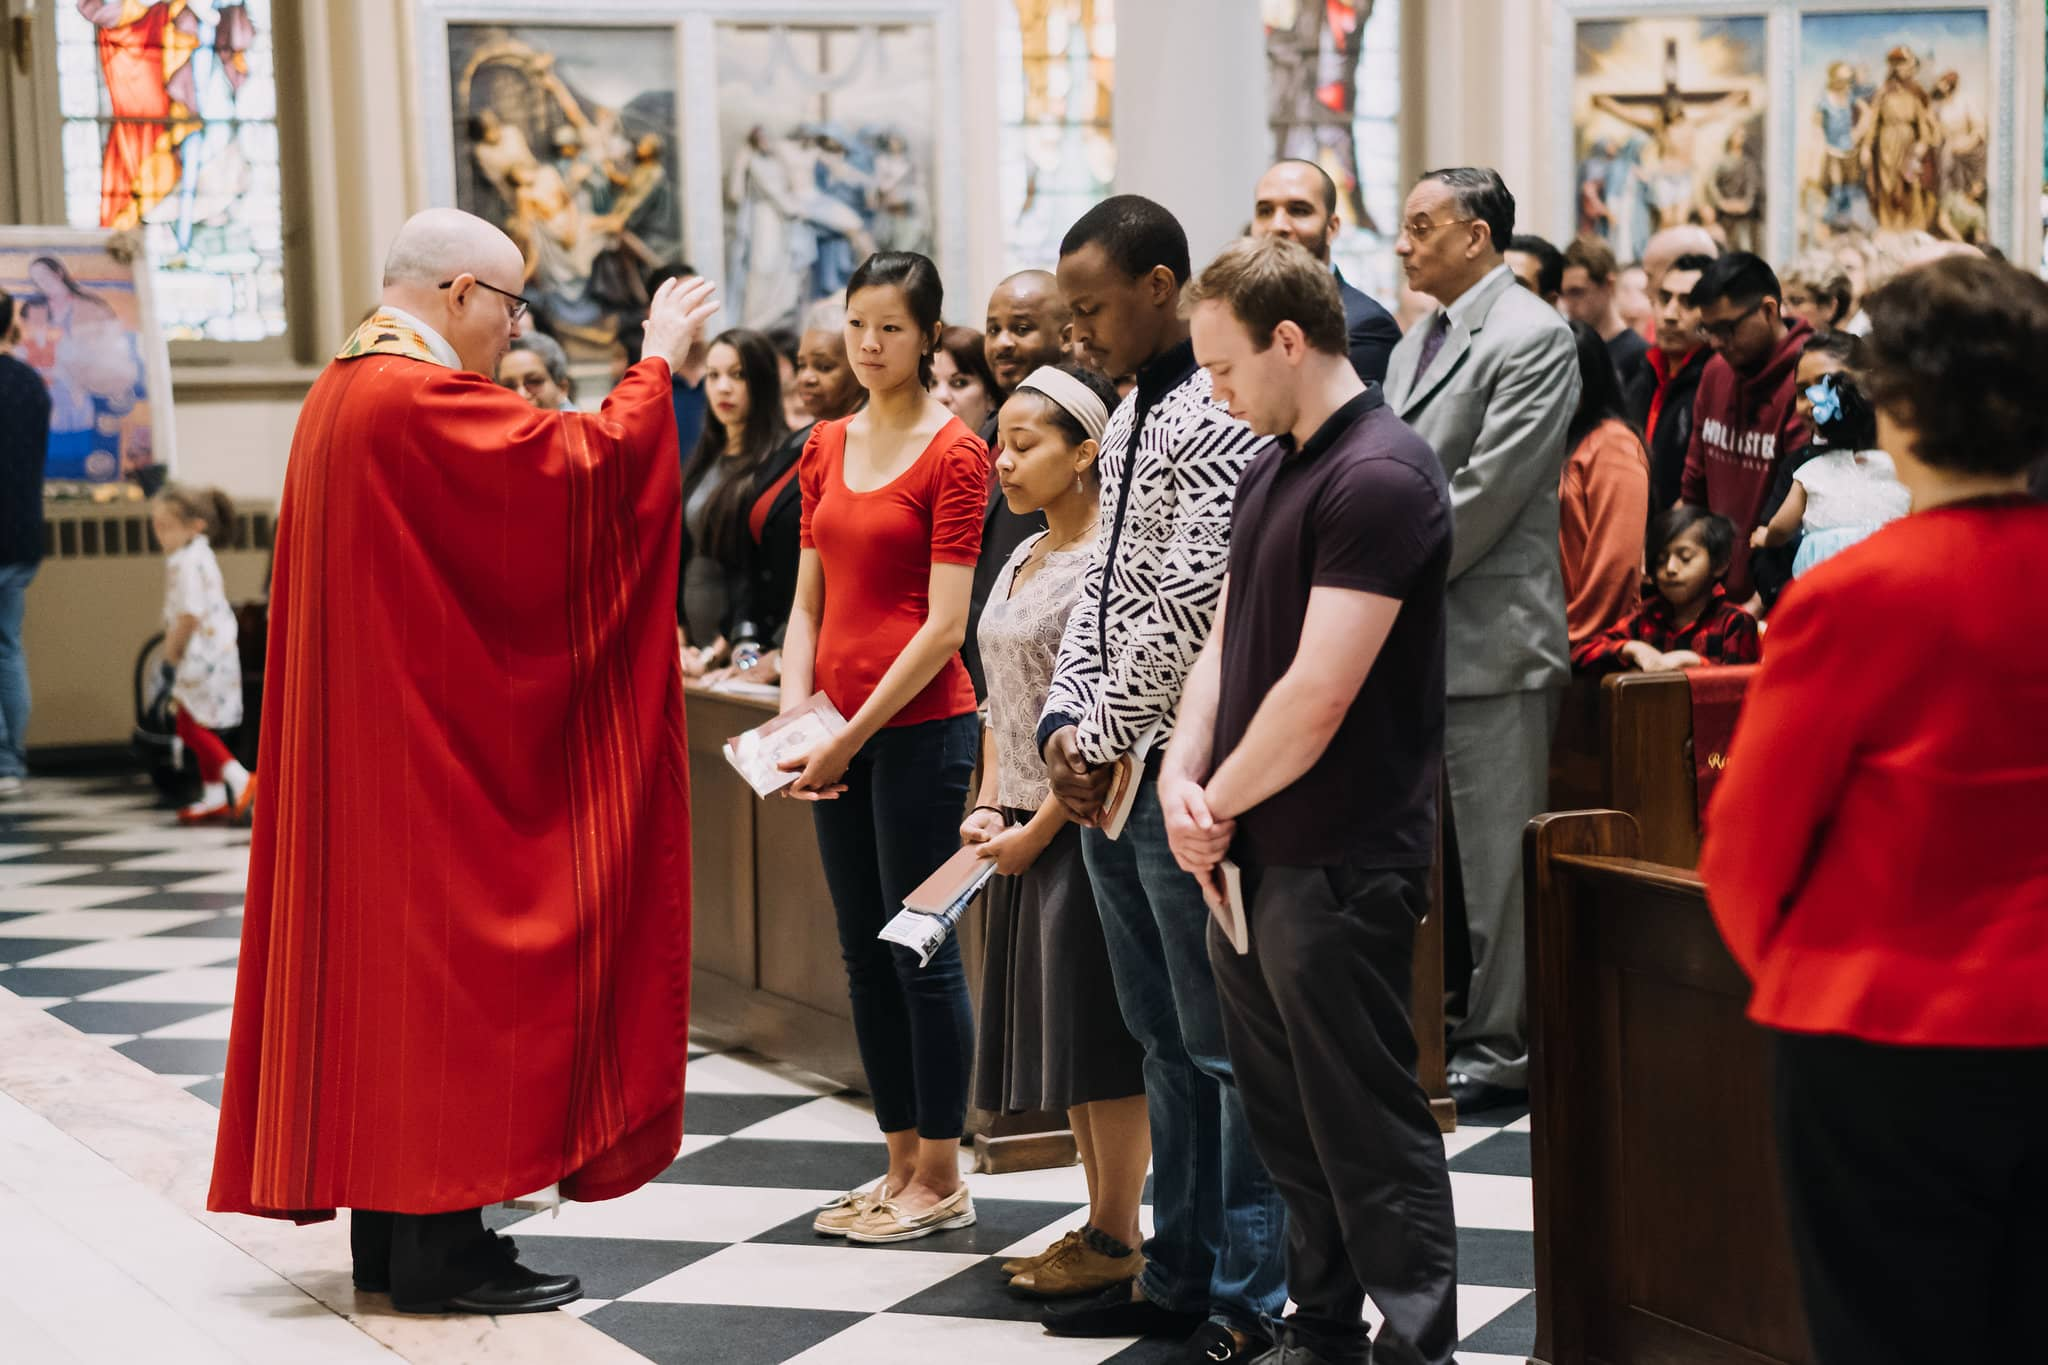 prayer-blessing-hands-mass-st-francis-de-sales-church-new-york-city.jpg